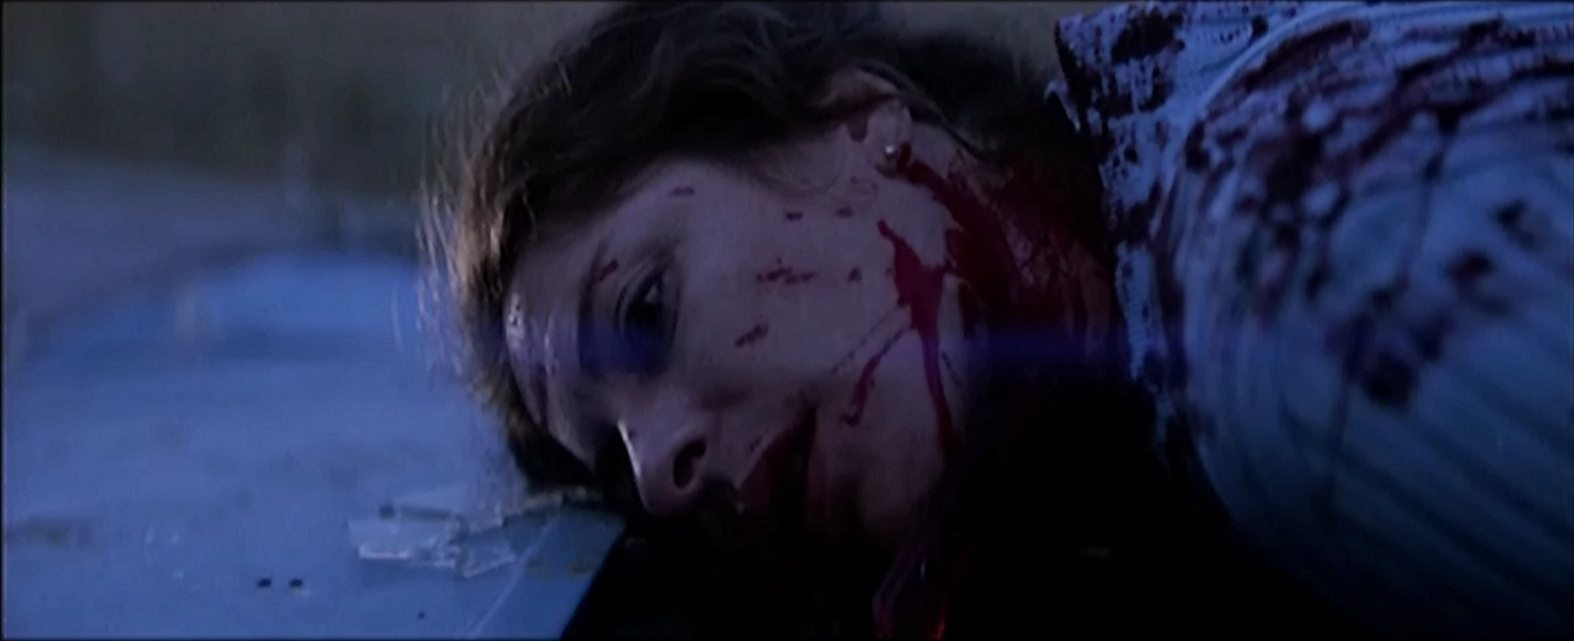 http://sinsofcinema.com/Images/Nightmares/Nightmares%20Stage%20Fright%20Severin%20DVD.jpg